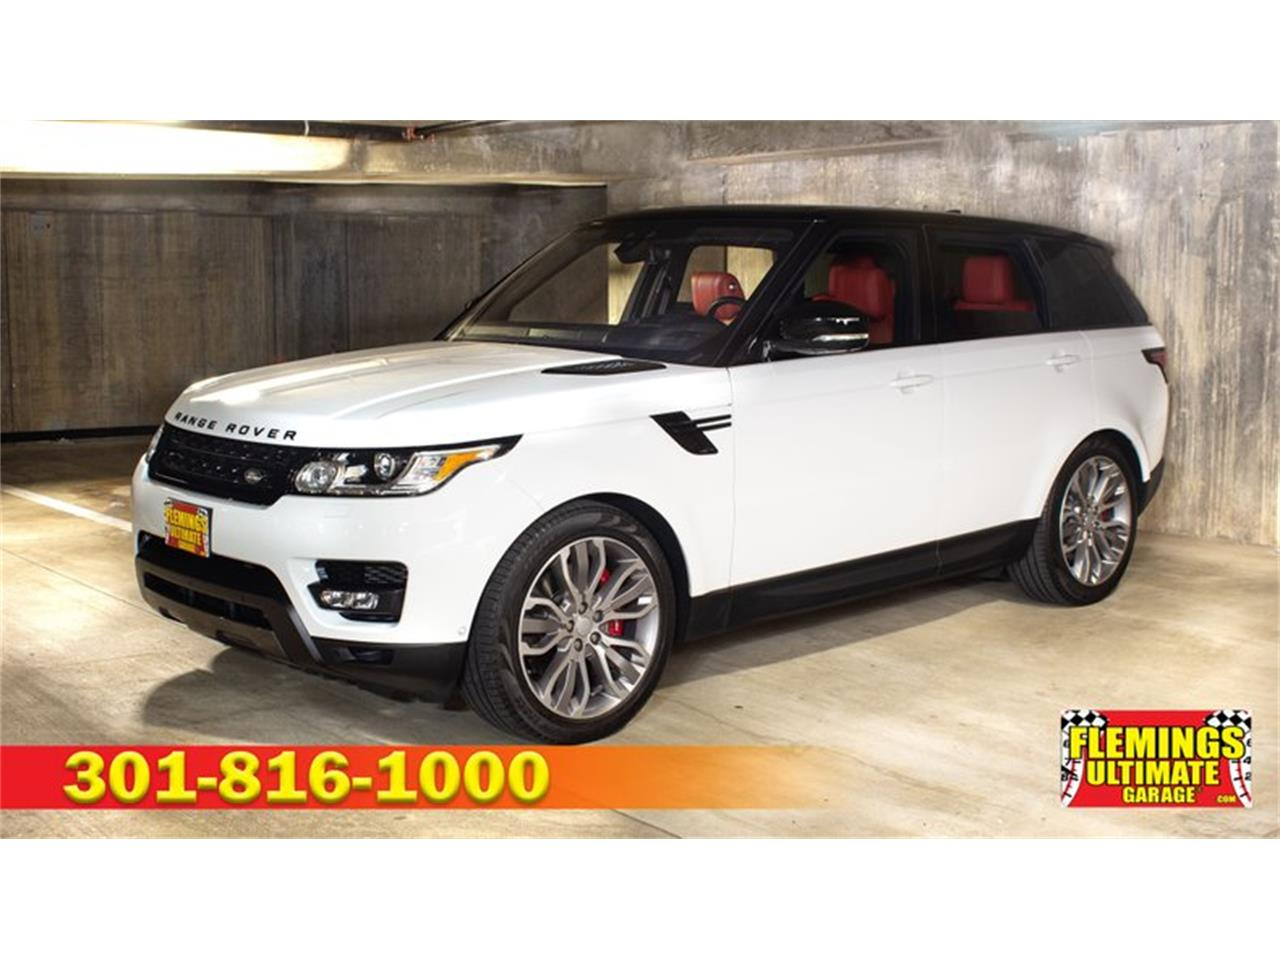 Garage Sale Rover For Sale 2017 Land Rover Range Rover In Rockville Maryland